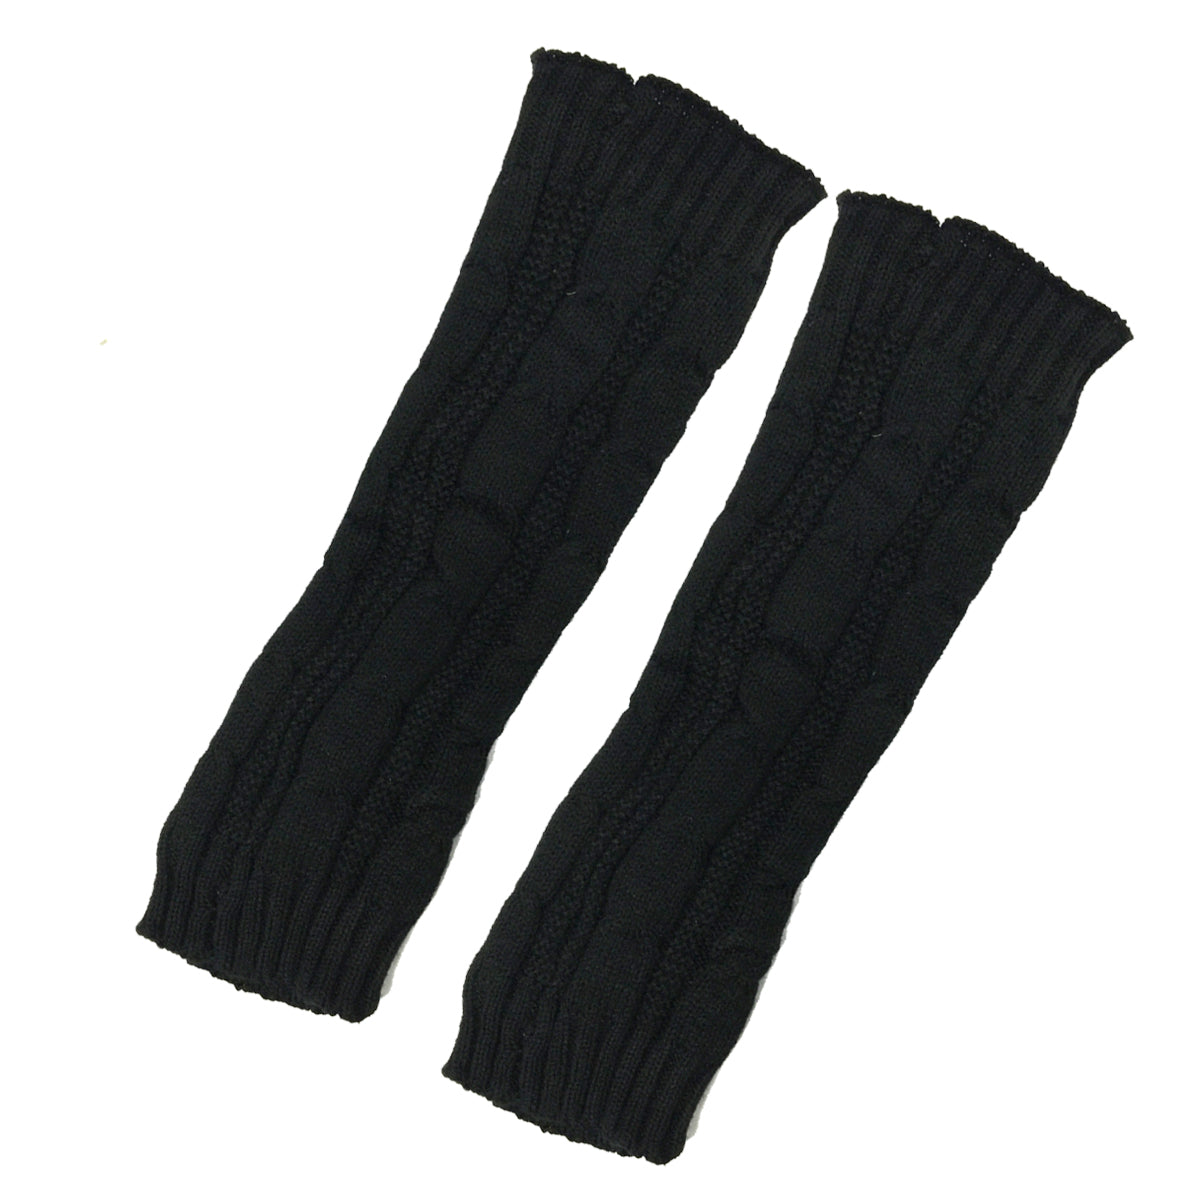 Wrapables Soft Knitted Women's Leg Warmers